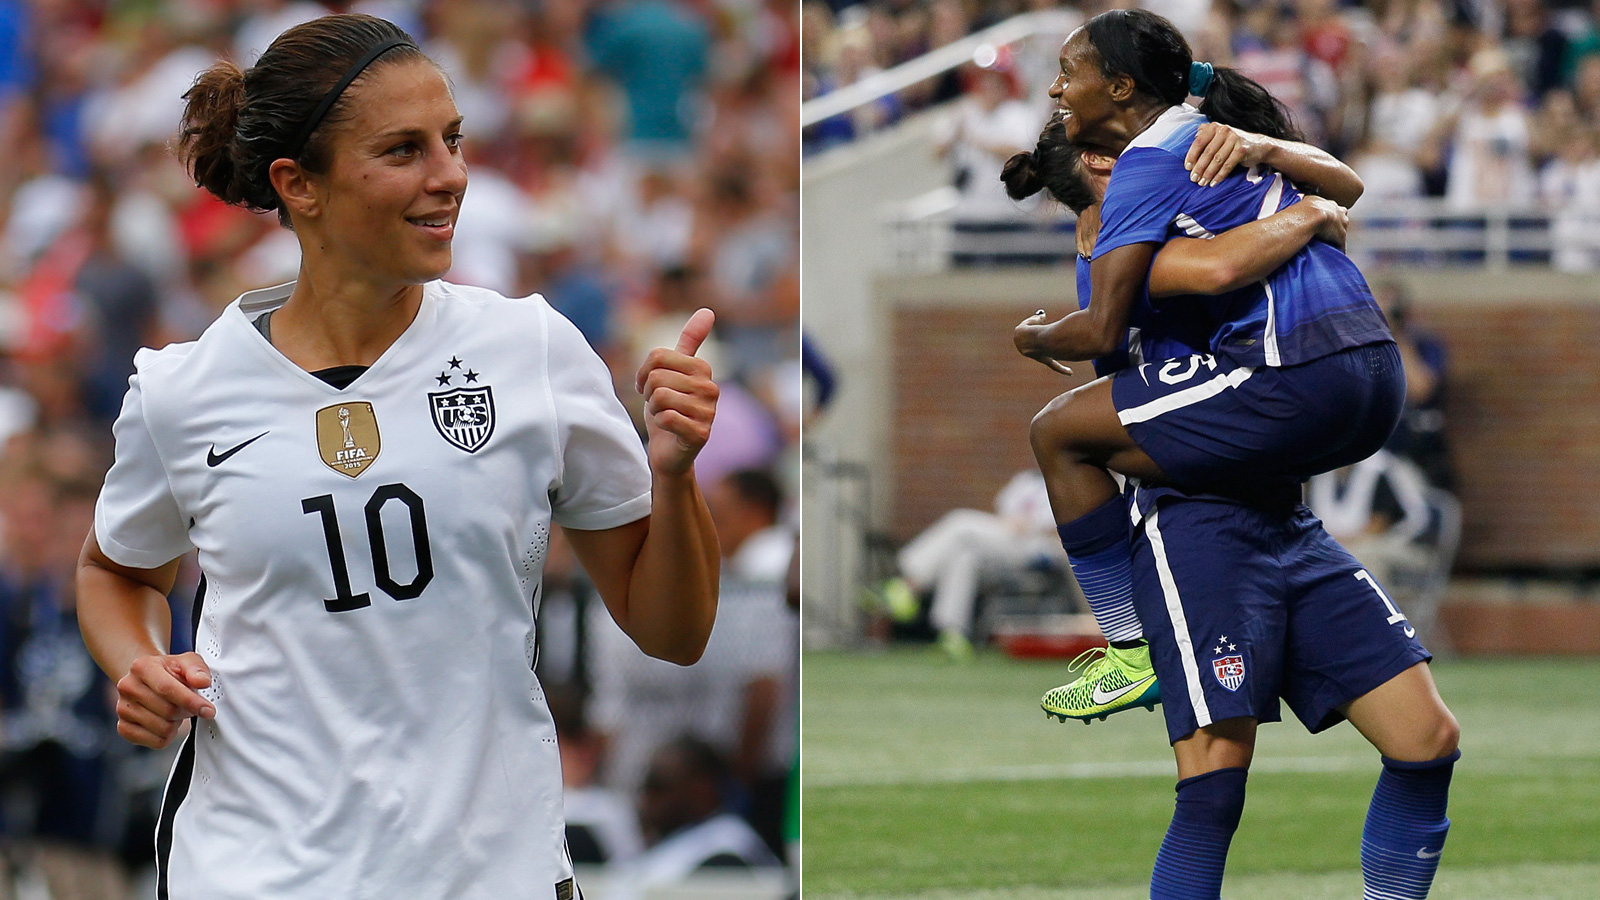 Carli Lloyd scored hat tricks in both games and NWSL Golden Boot winner Crystal Dunn scored her first international goals as the USWNT beat Haiti 5-0 and 8-0 in a pair of friendlies. Haiti replaced on-strike Australia as a last-minute opponent.